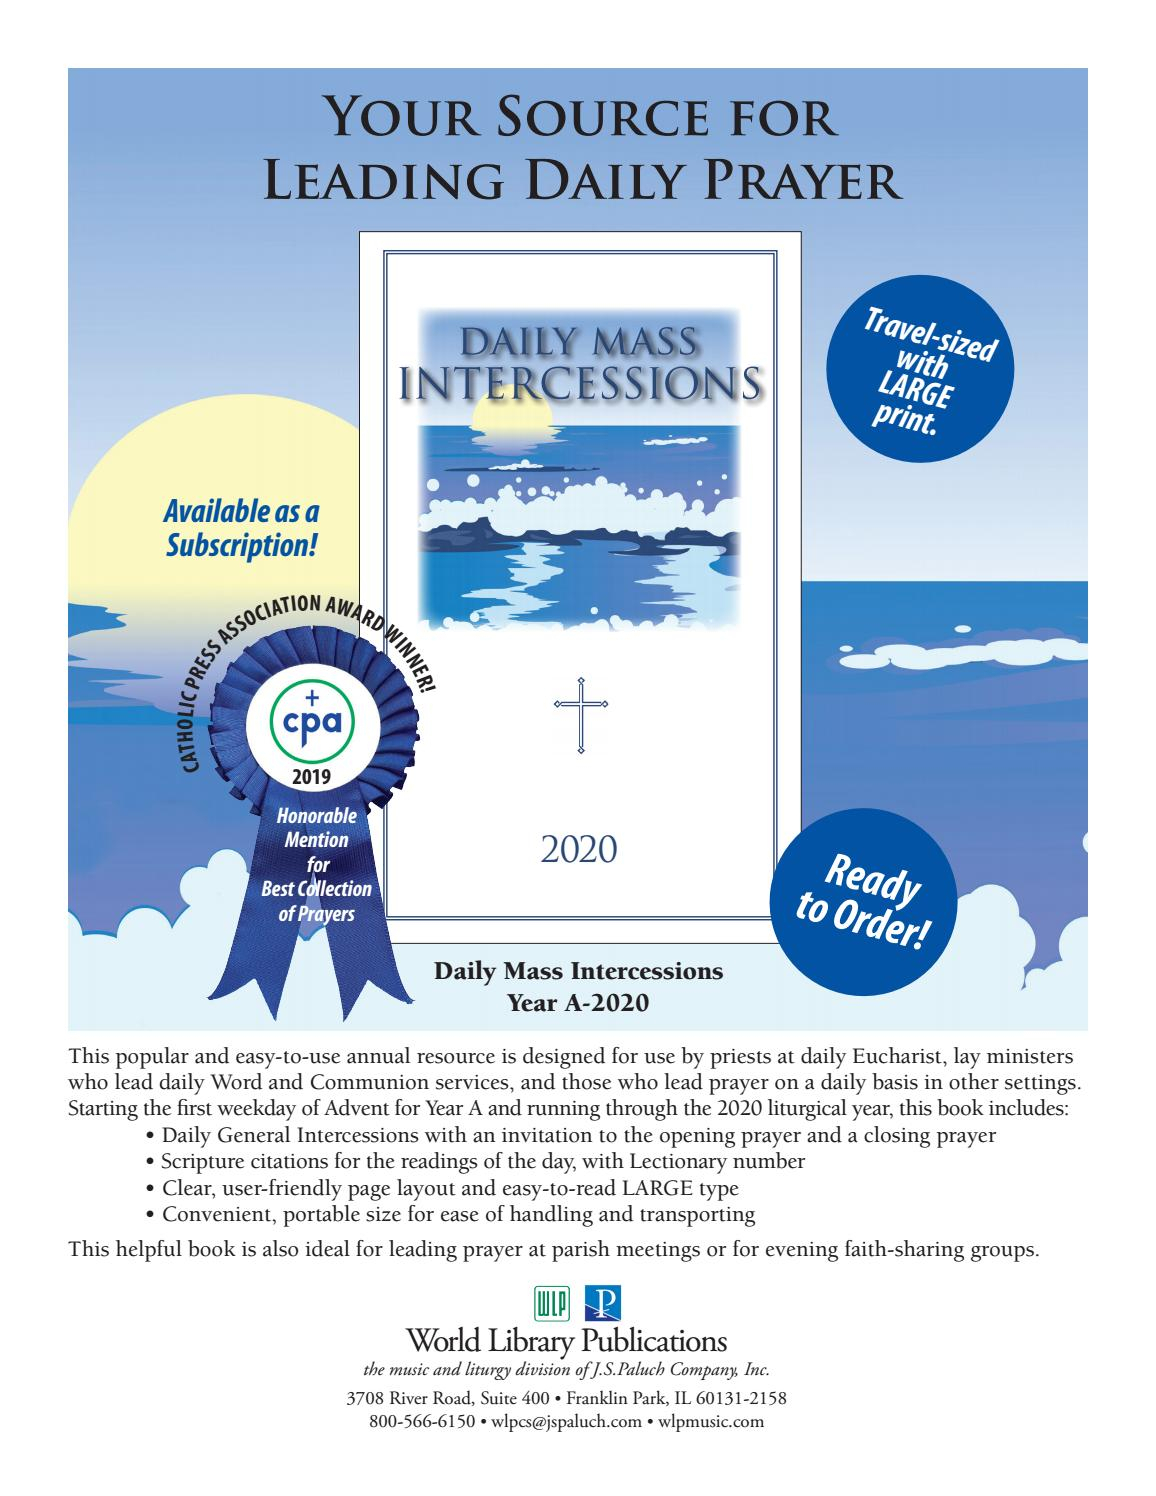 Daily Mass Intercessions 2020World Library Publications for Daily Mass Intercessions 2021